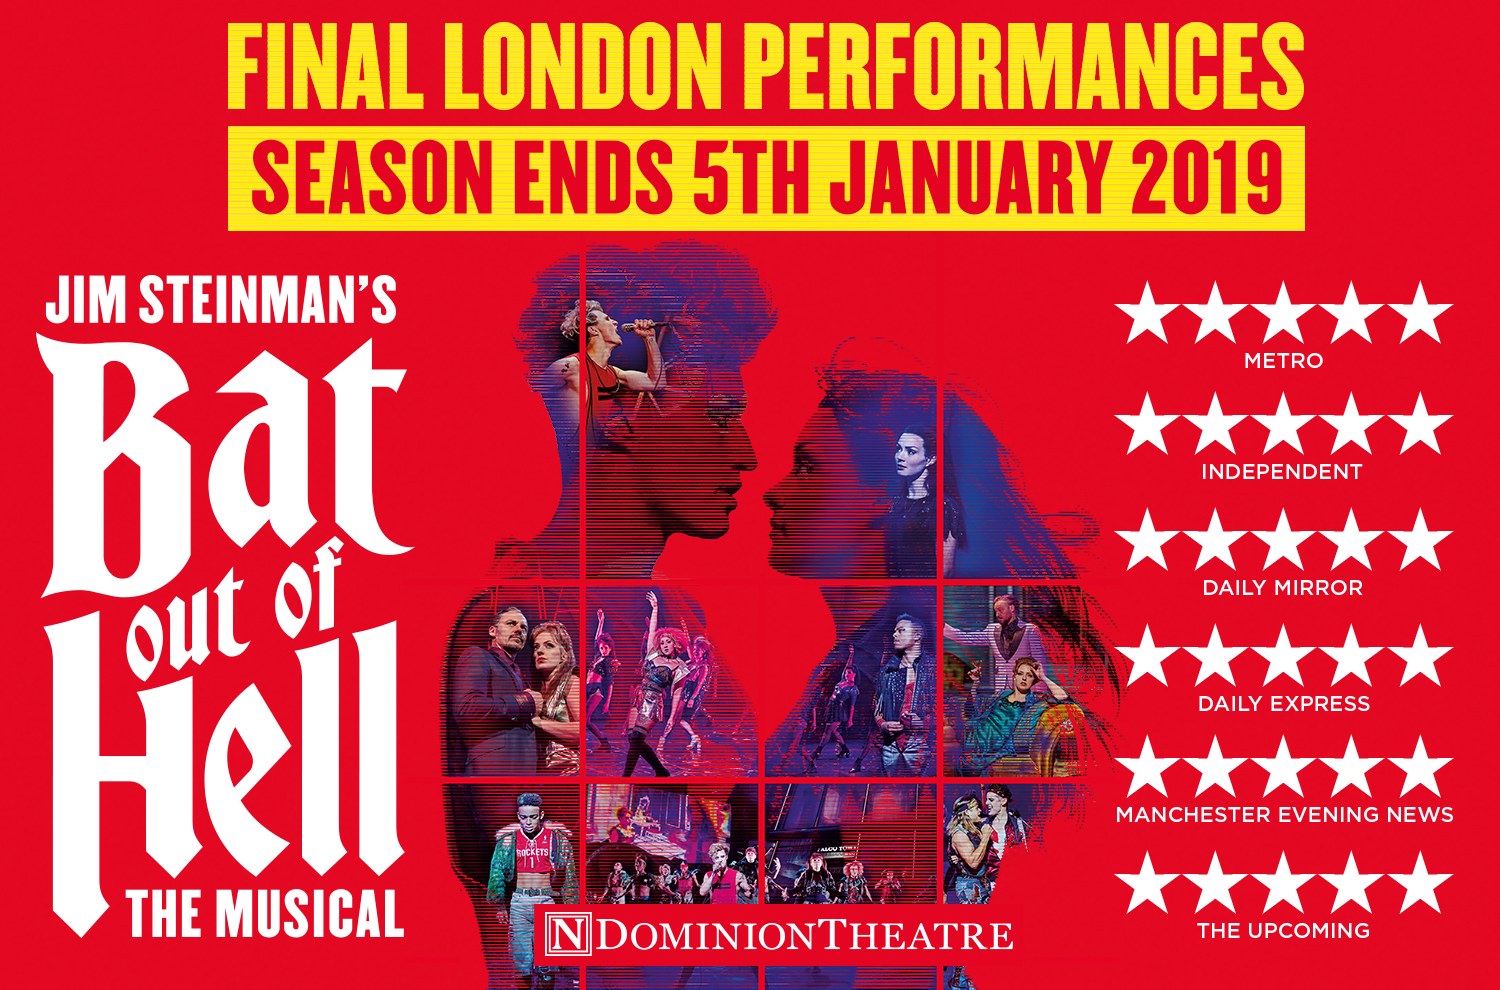 Jim Steinman's Bat Out Of Hell The Musical at the Dominion Theatre, London until 5th January 2019